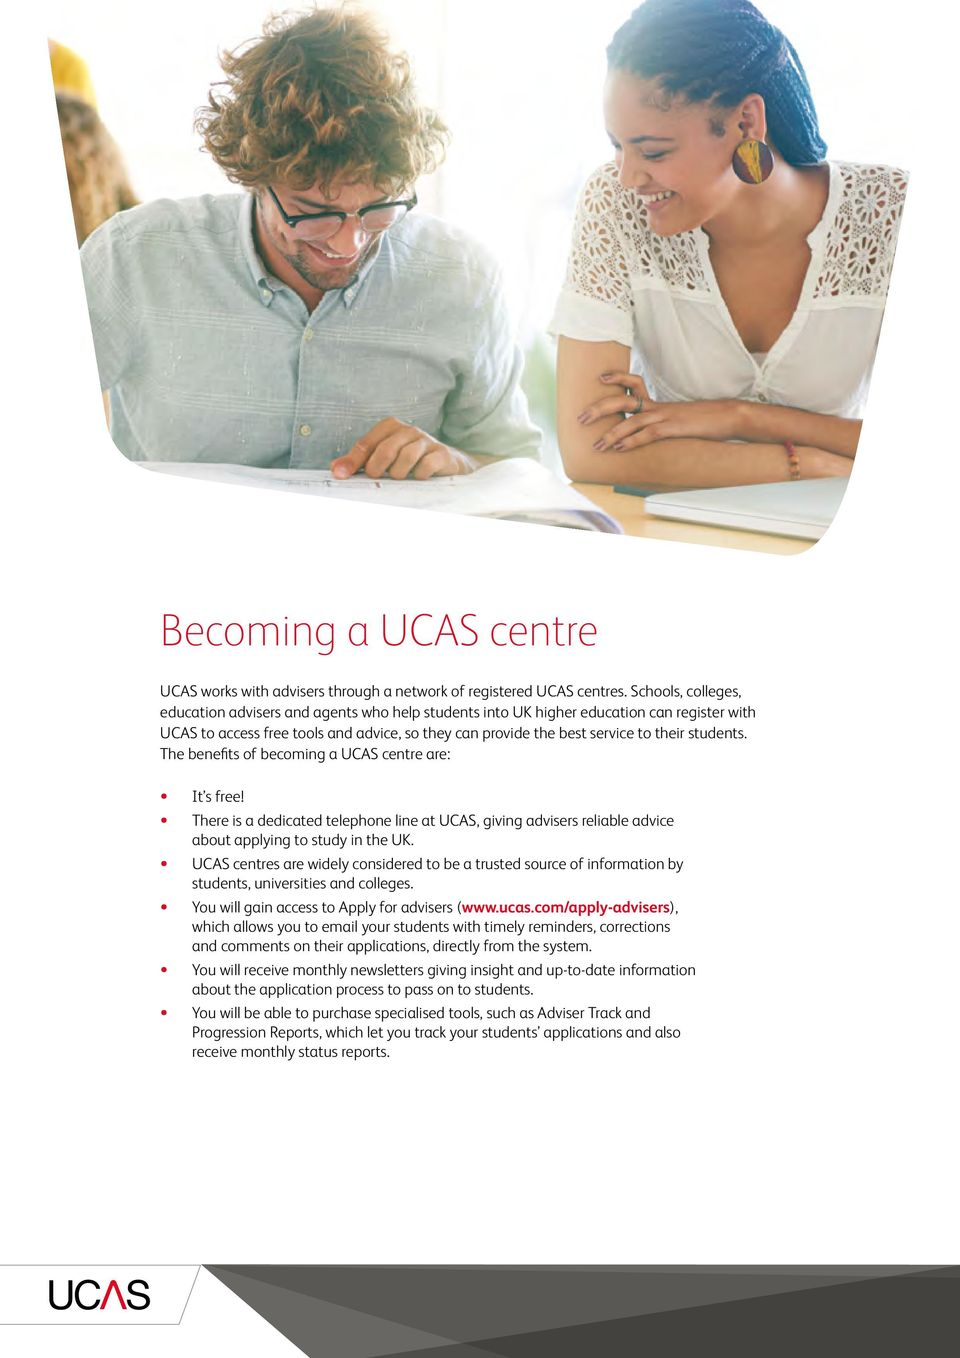 students. The benefits of becoming a UCAS centre are: It s free! There is a dedicated telephone line at UCAS, giving advisers reliable advice about applying to study in the UK.